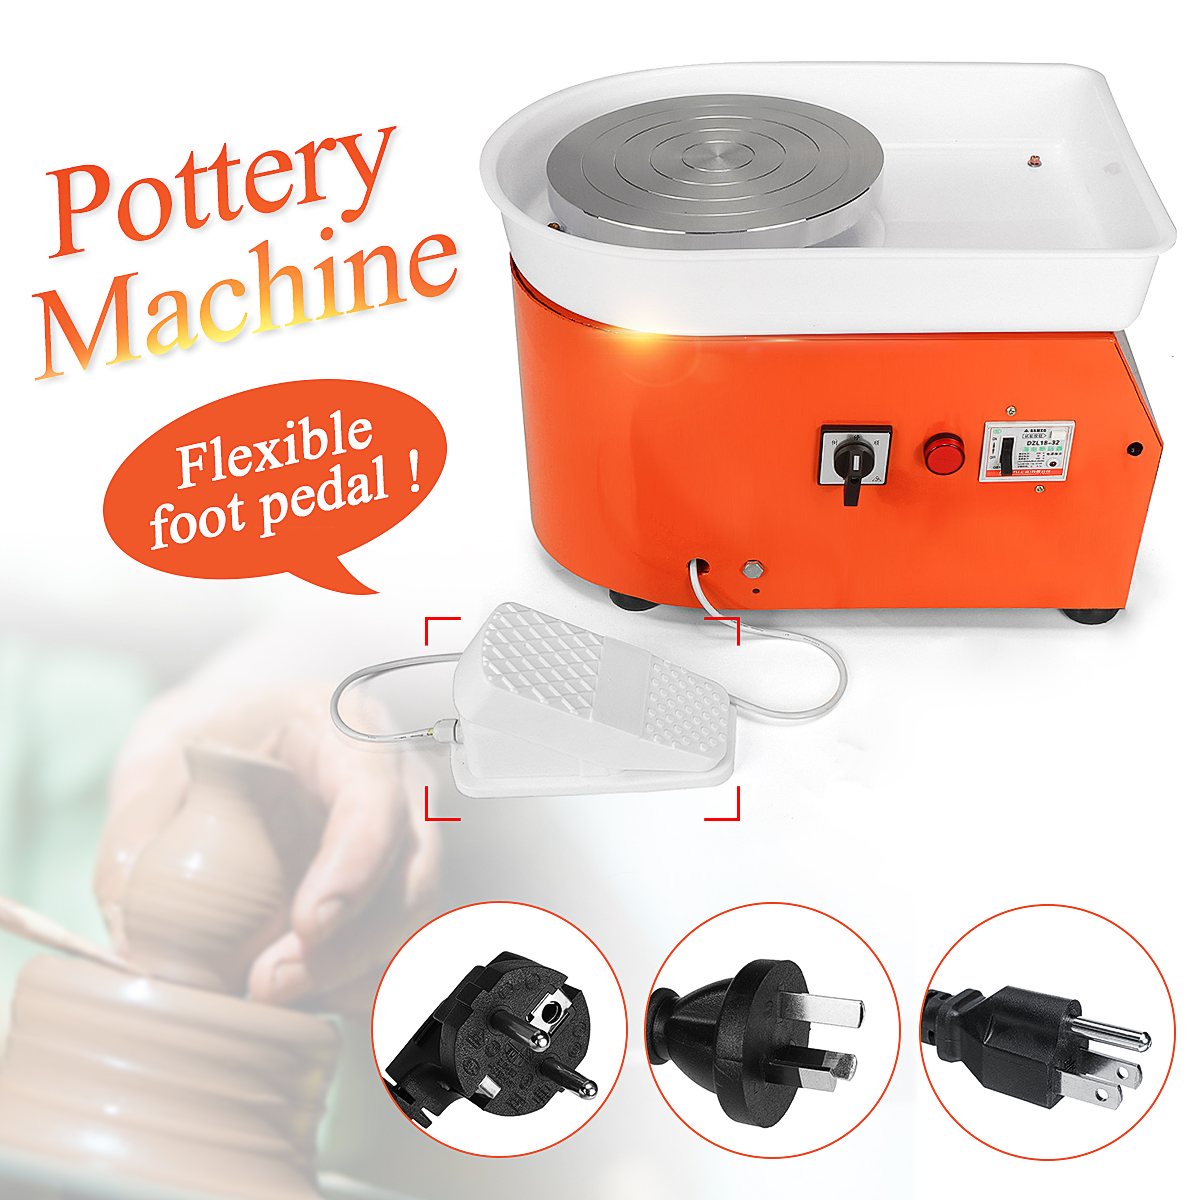 EU/AU AC 220V 250W Pottery Wheel Machine 25cm With Mobile Foot Pedal Ceramic Work Ceramics Clay Art Smooth Speed Low Noise